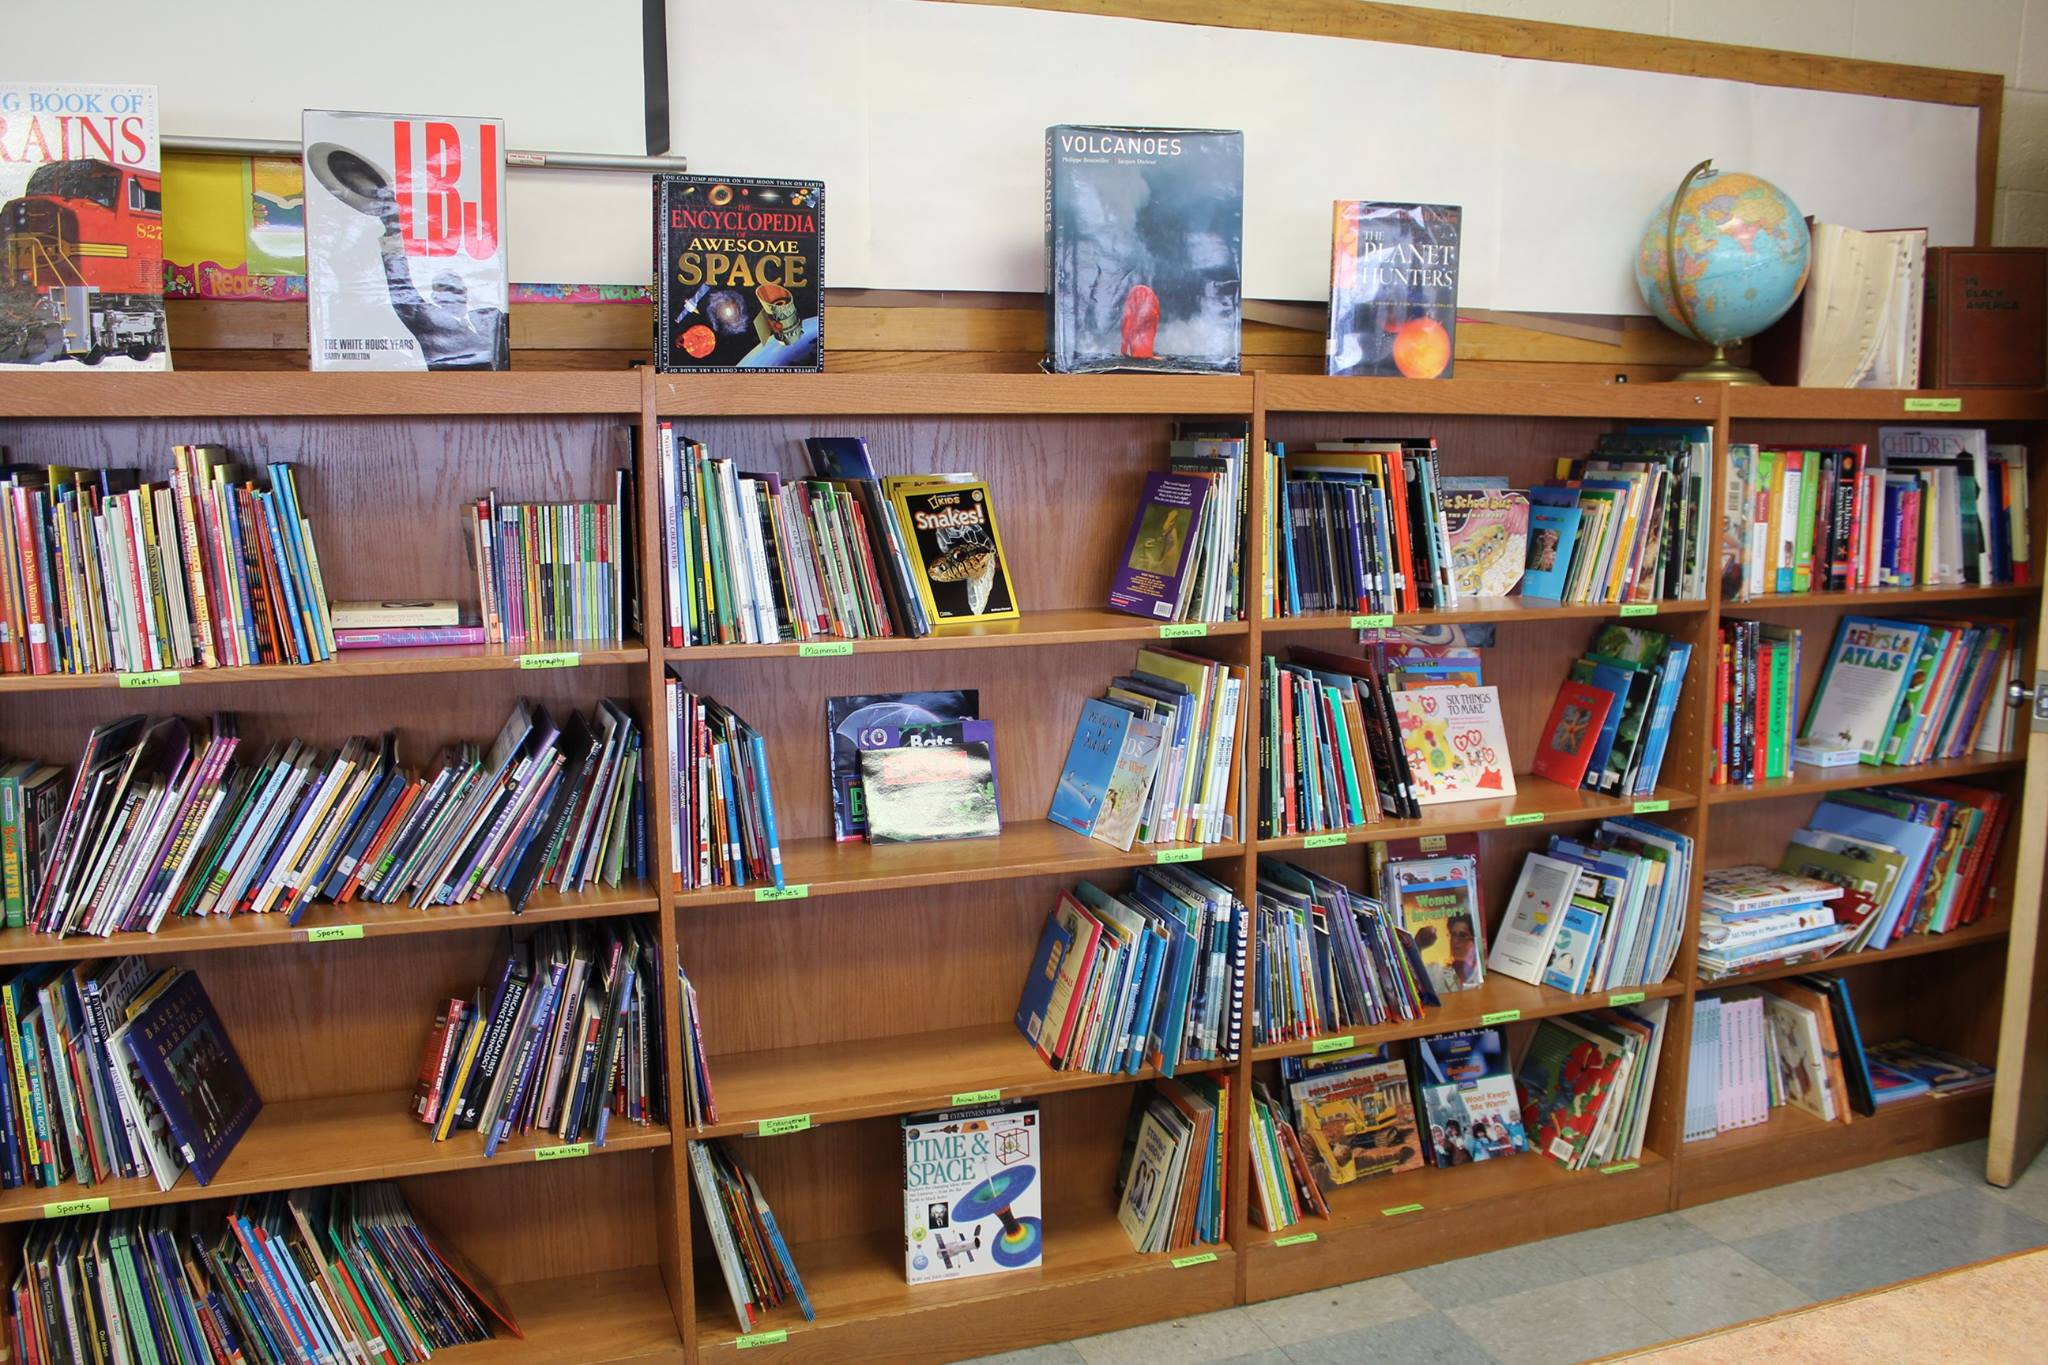 Second Library space created at Edward Gideon Elementary